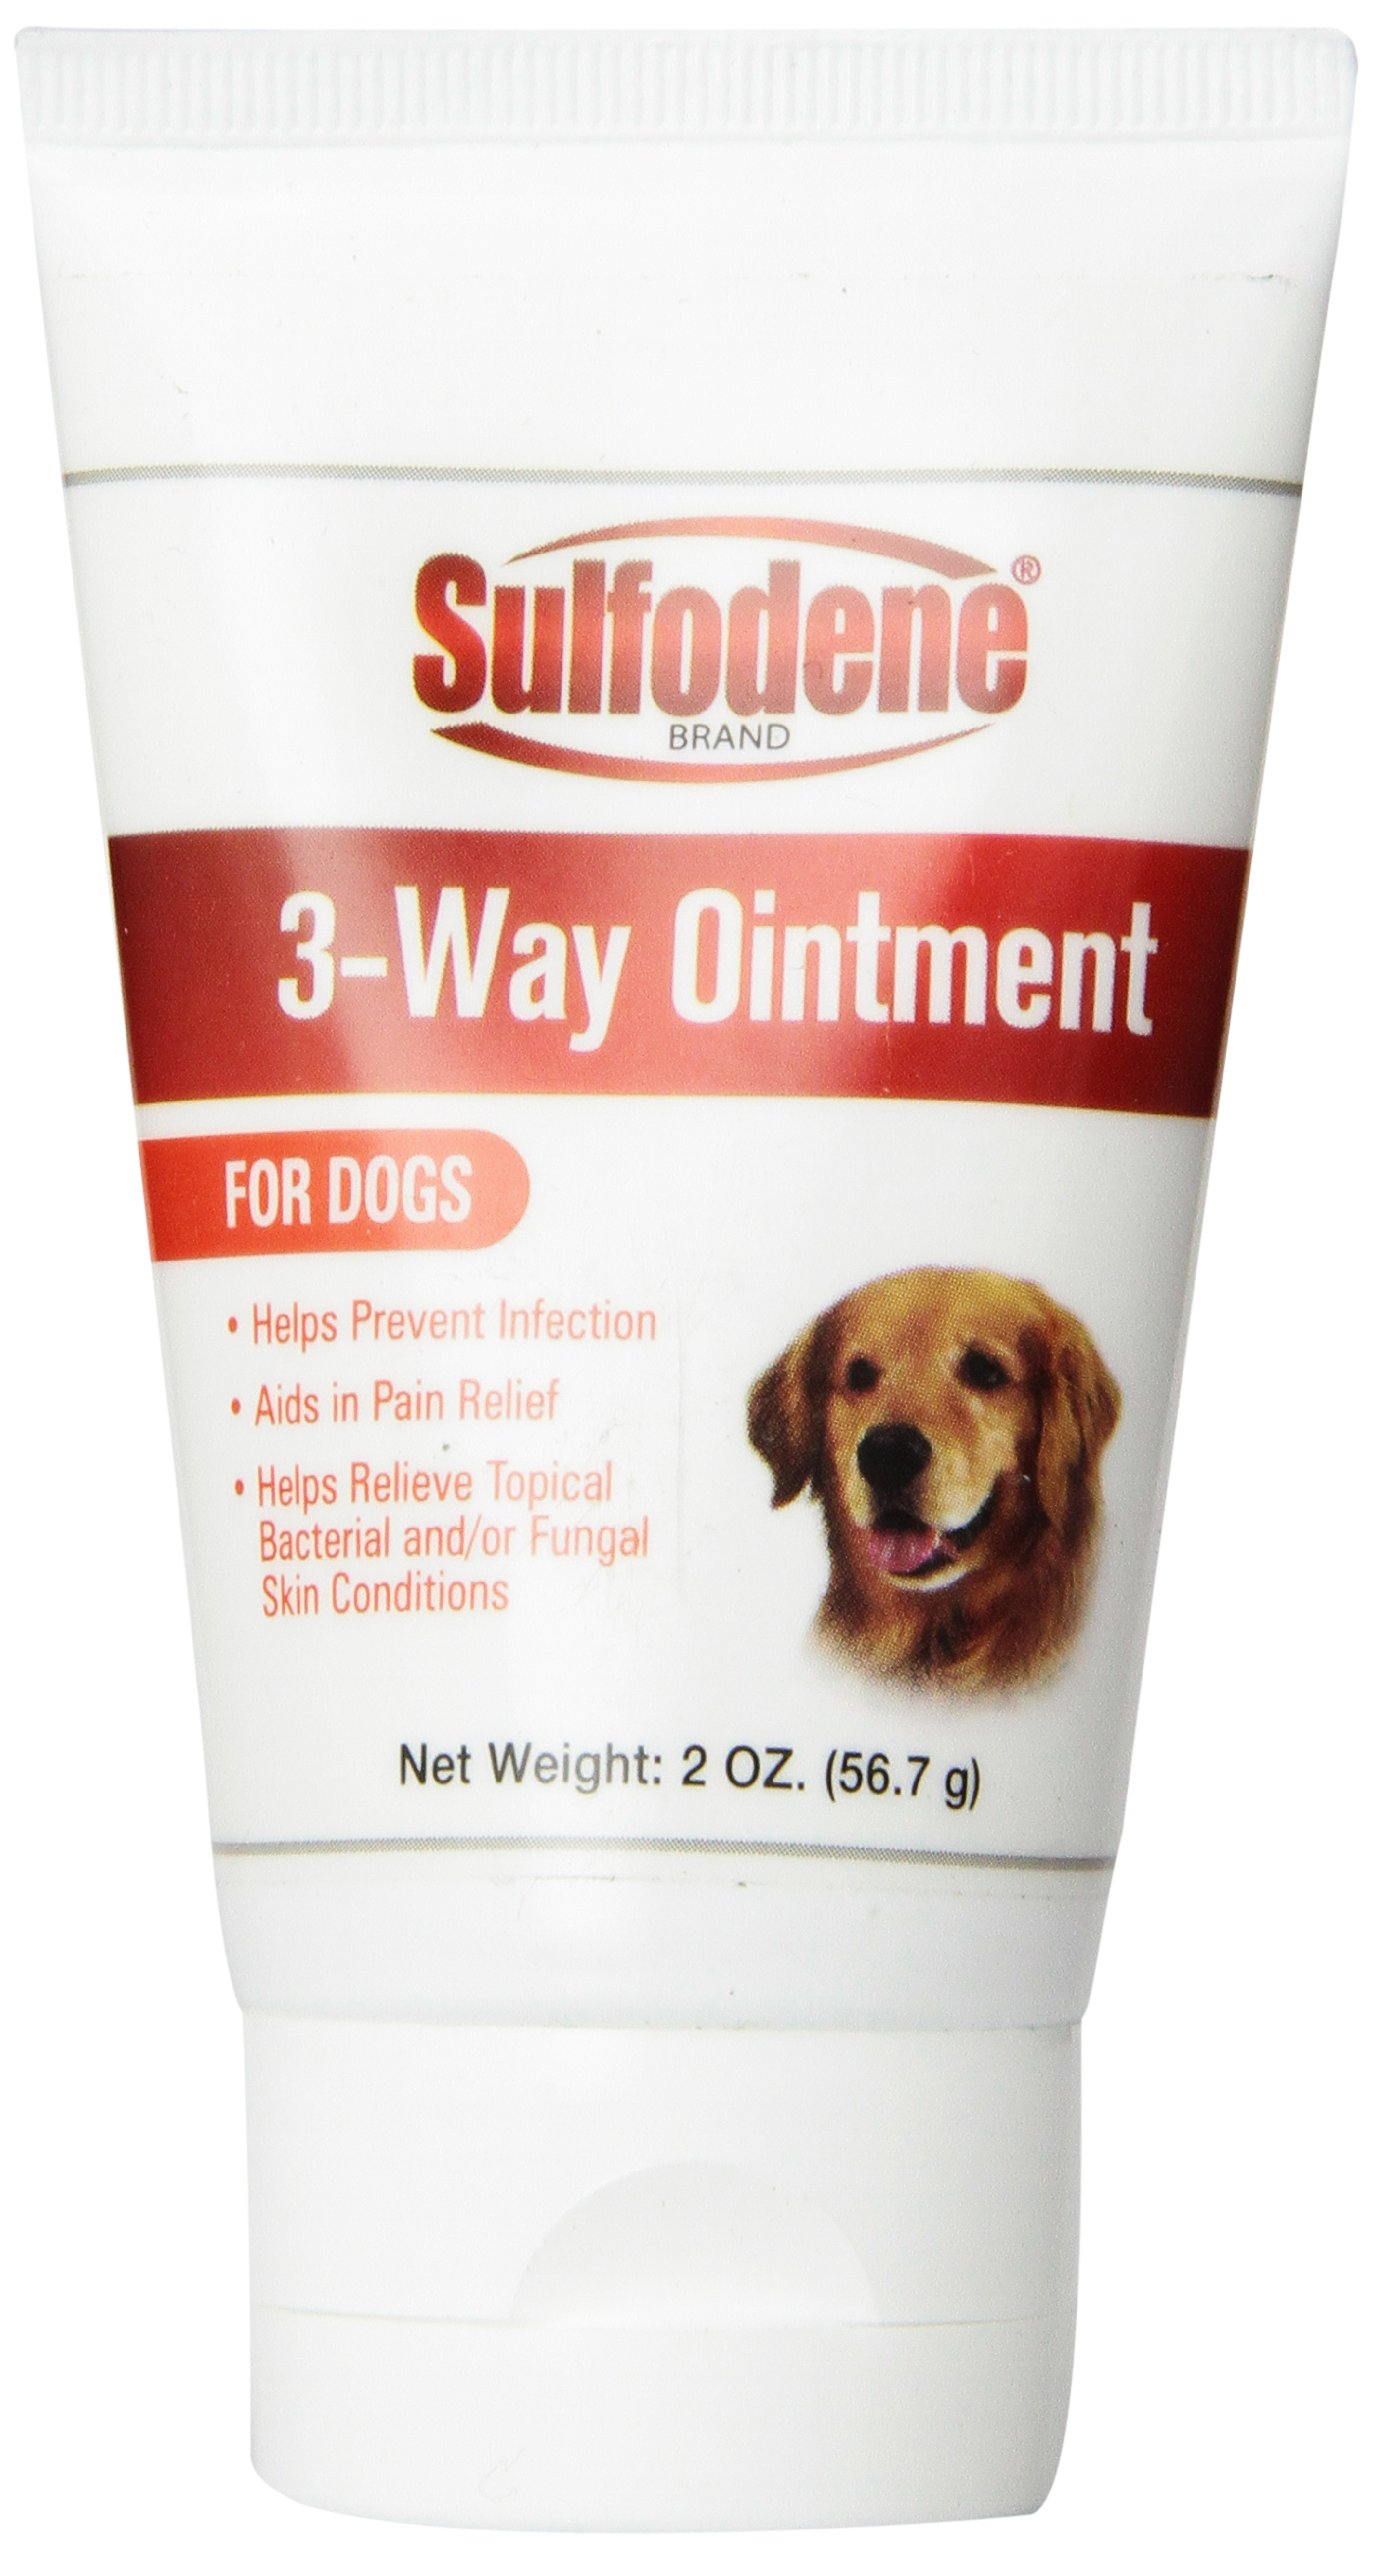 Sulfodene 3-Way Ointment for Dogs Small